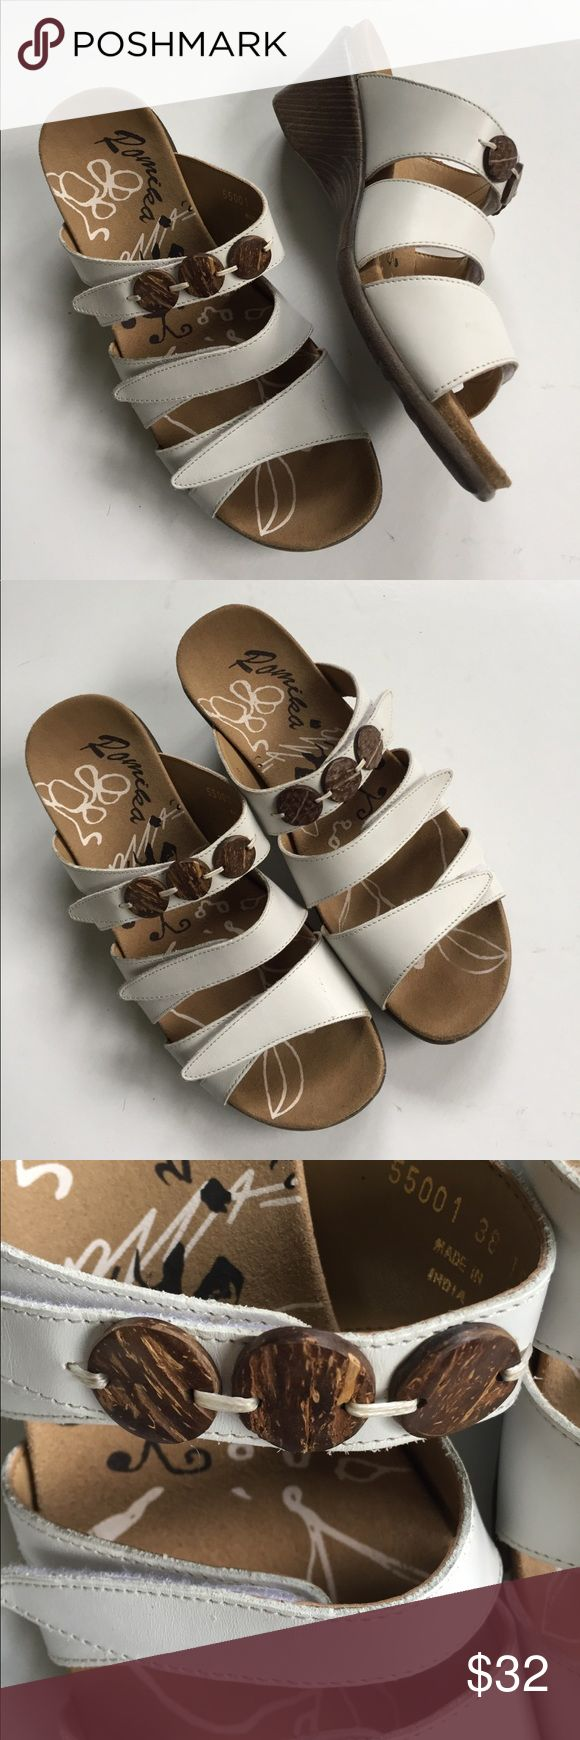 """EUC Romika leather sandals Excellent condition; Beautiful white leather with bead accents; 3 points of velcro adjustability; super comfortable molded footbed - great if you're on your feet a lot; 2 1/2"""" wedge; Romika size 38 which is a 7 - 7 1/2. Smoke-free/pet-free home. Romika Shoes Sandals"""